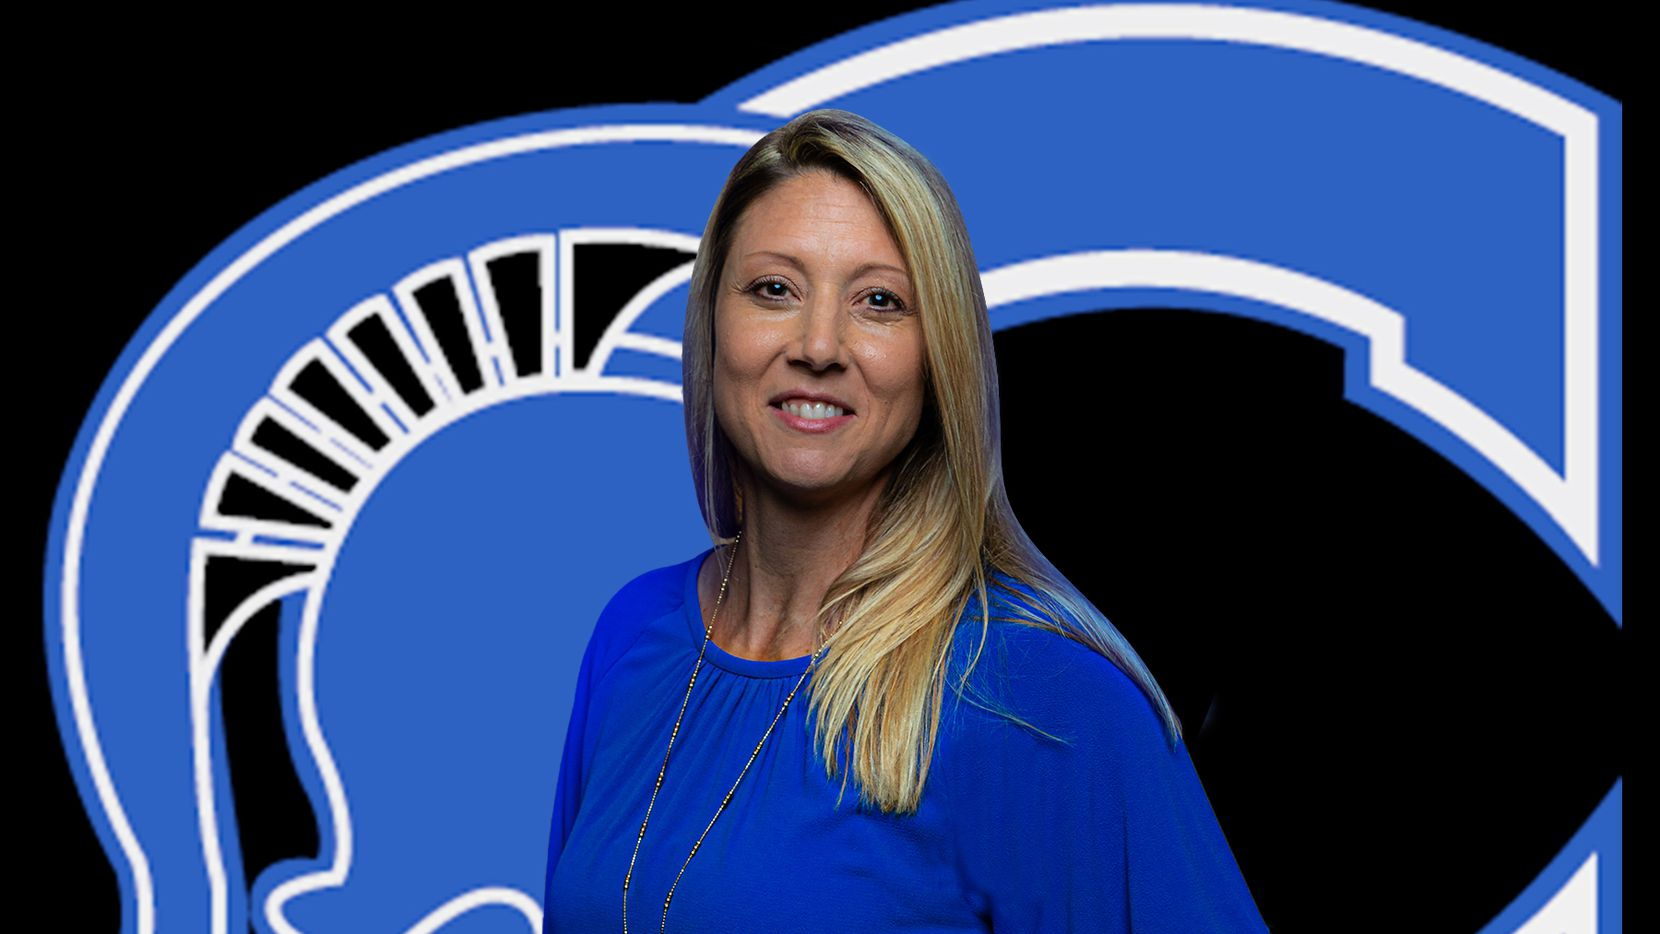 Jessica Tyler was named the new volleyball coach at Burleson Centennial on Monday. (Photo courtesy of Burleson ISD)